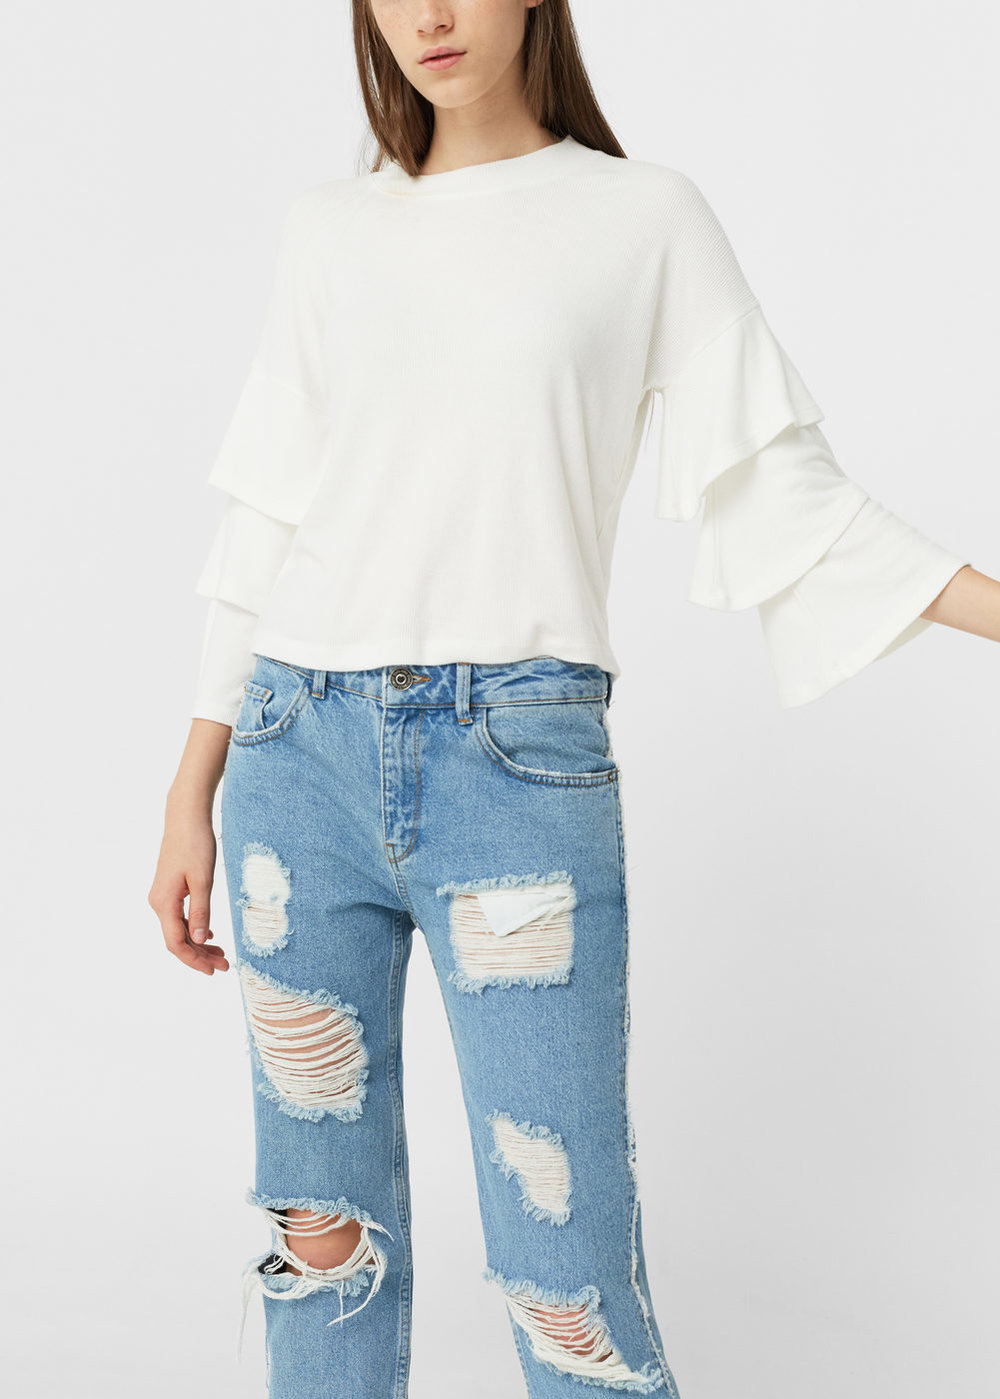 Back at it again with the ruffles! But really though,   this is a nice basic t-shirt   that's comfortable to wear a lot but with ruffle detail on the sleeves so that again, you're outfit is anything but boring.